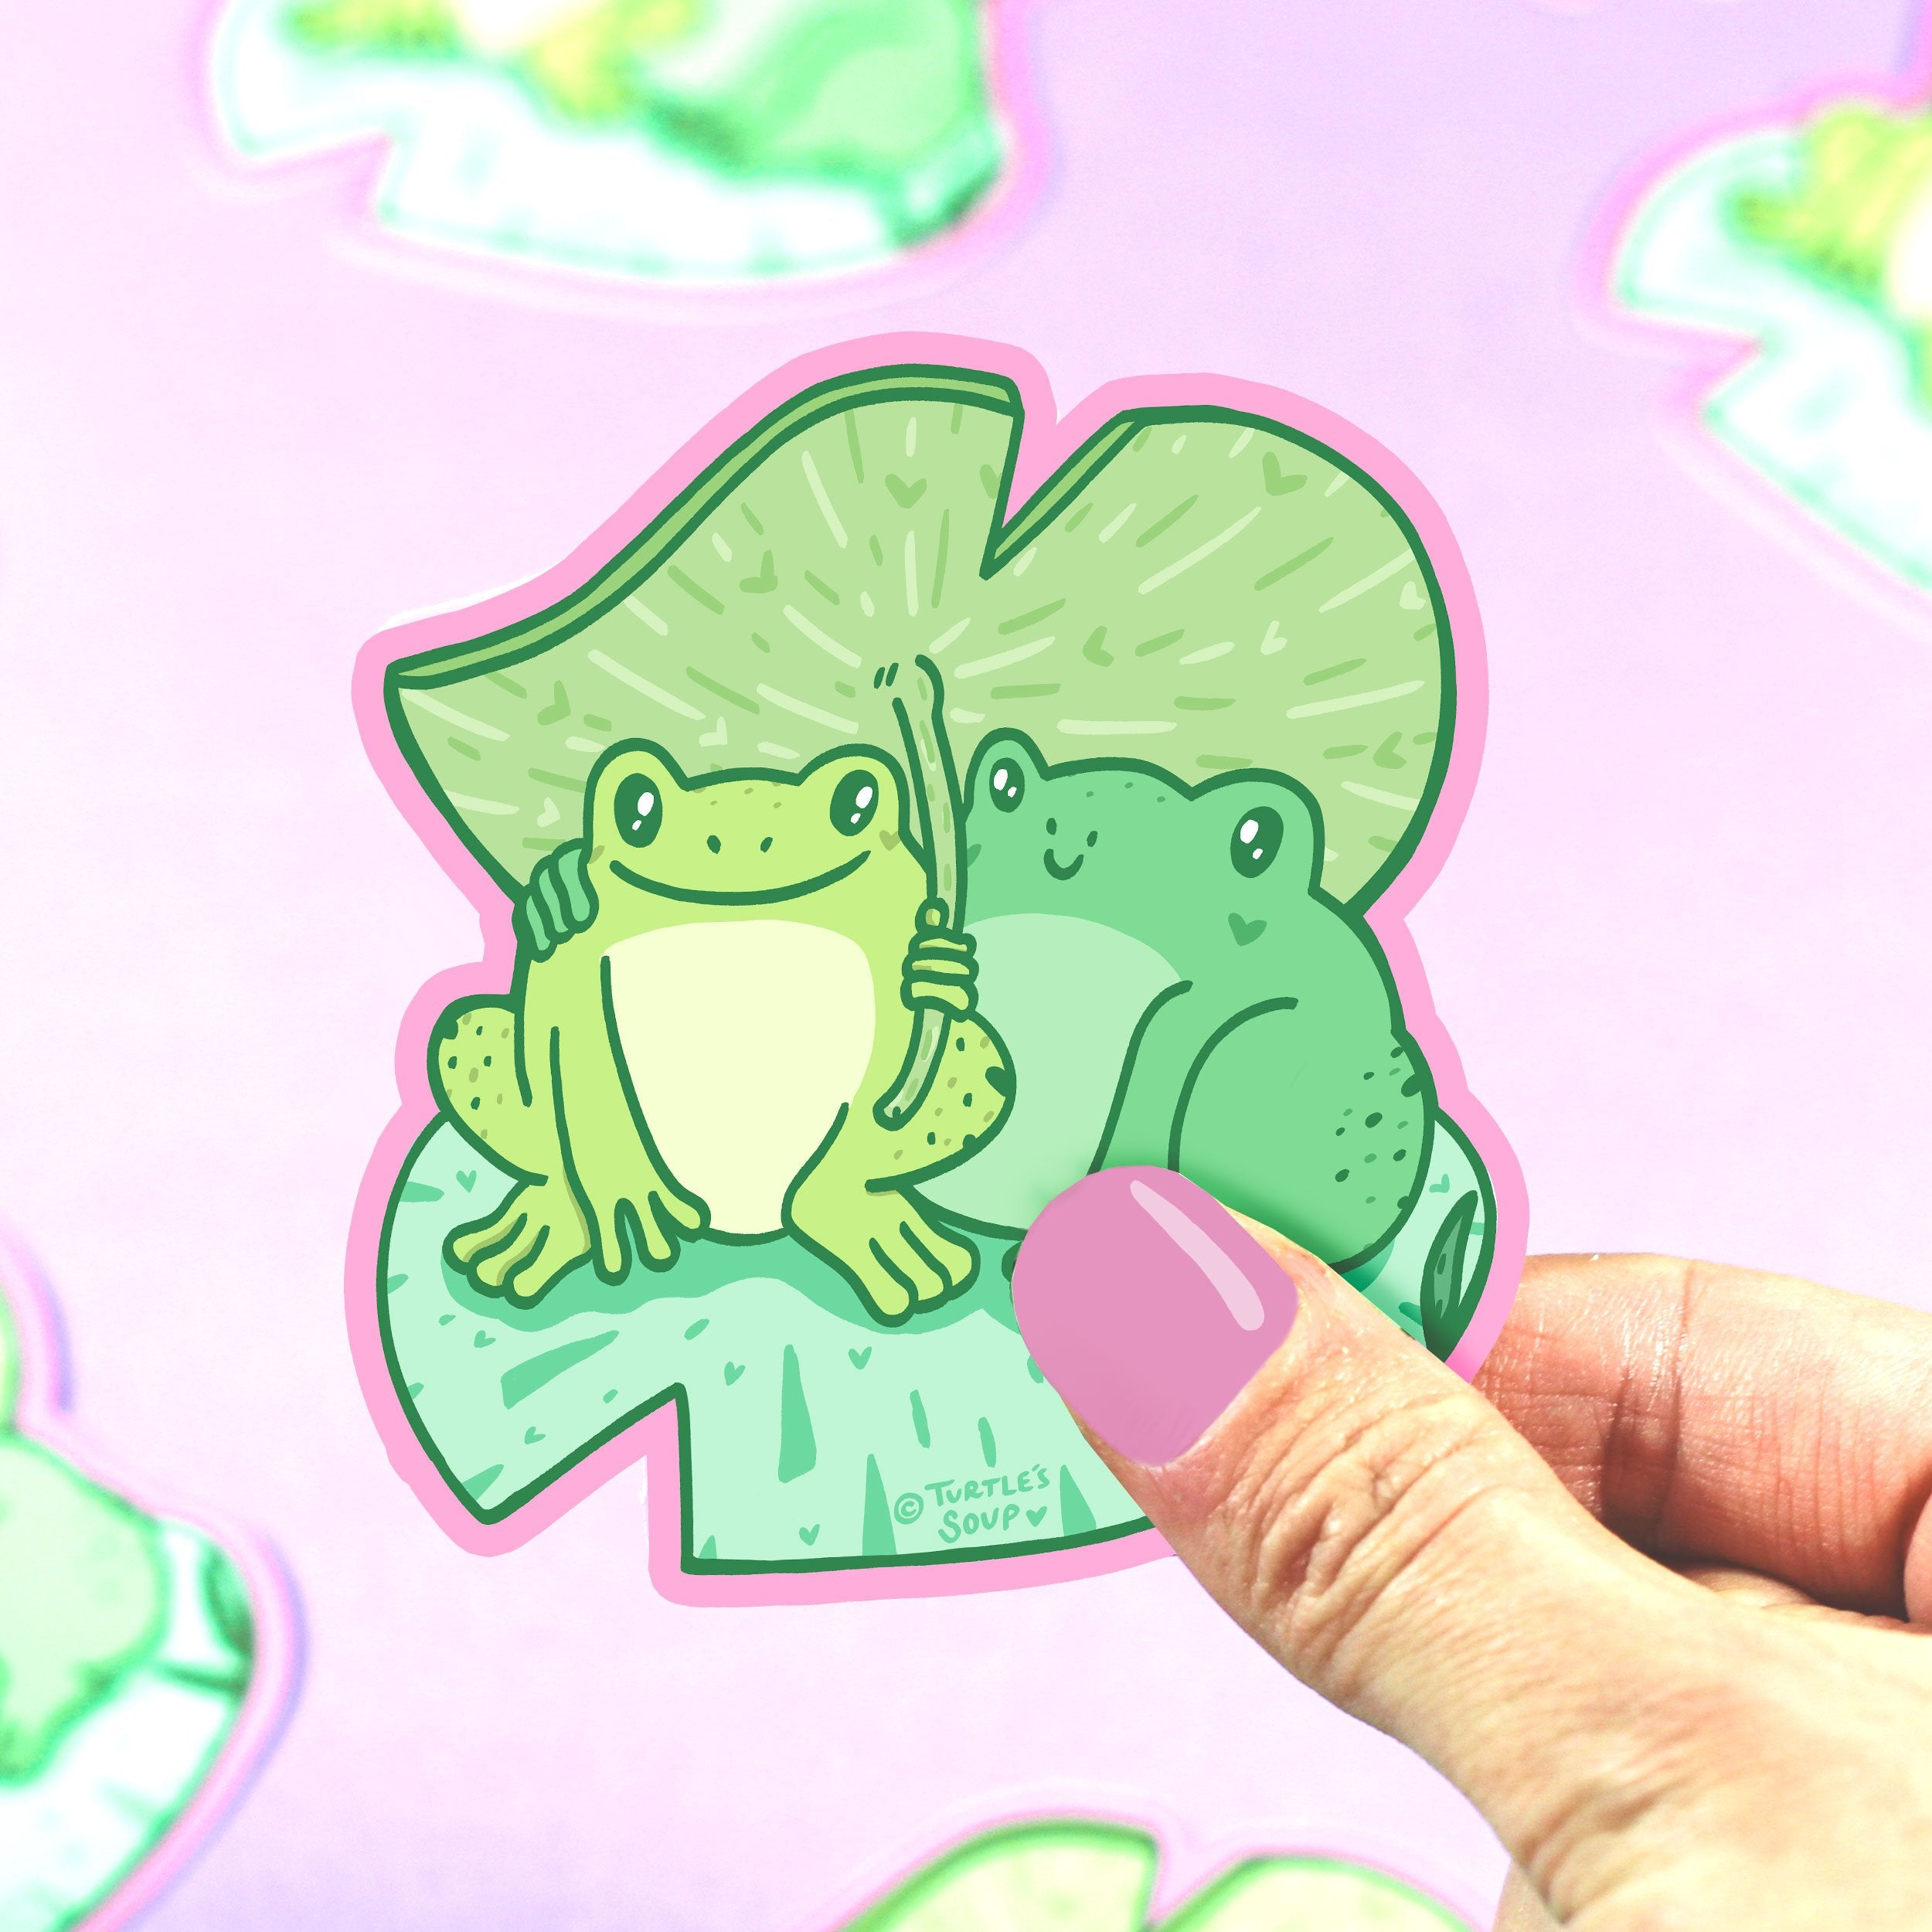 frog-lilypad-love-bestie-vinyl-sticker-cute-art-turtle_s-soup